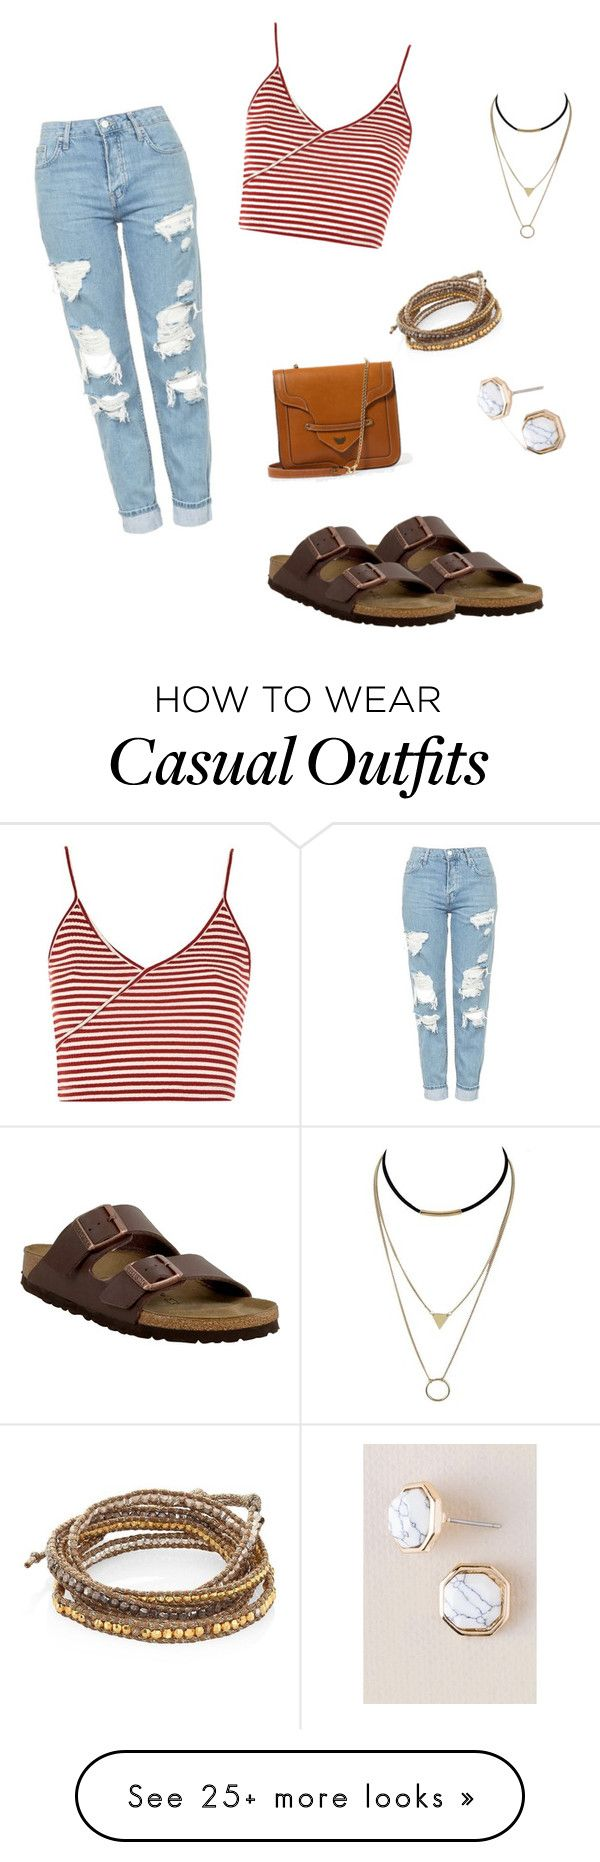 """Casual"" by stringcheesetheory on Polyvore featuring Birkenstock, Topshop, Chan Luu and Francesca's"